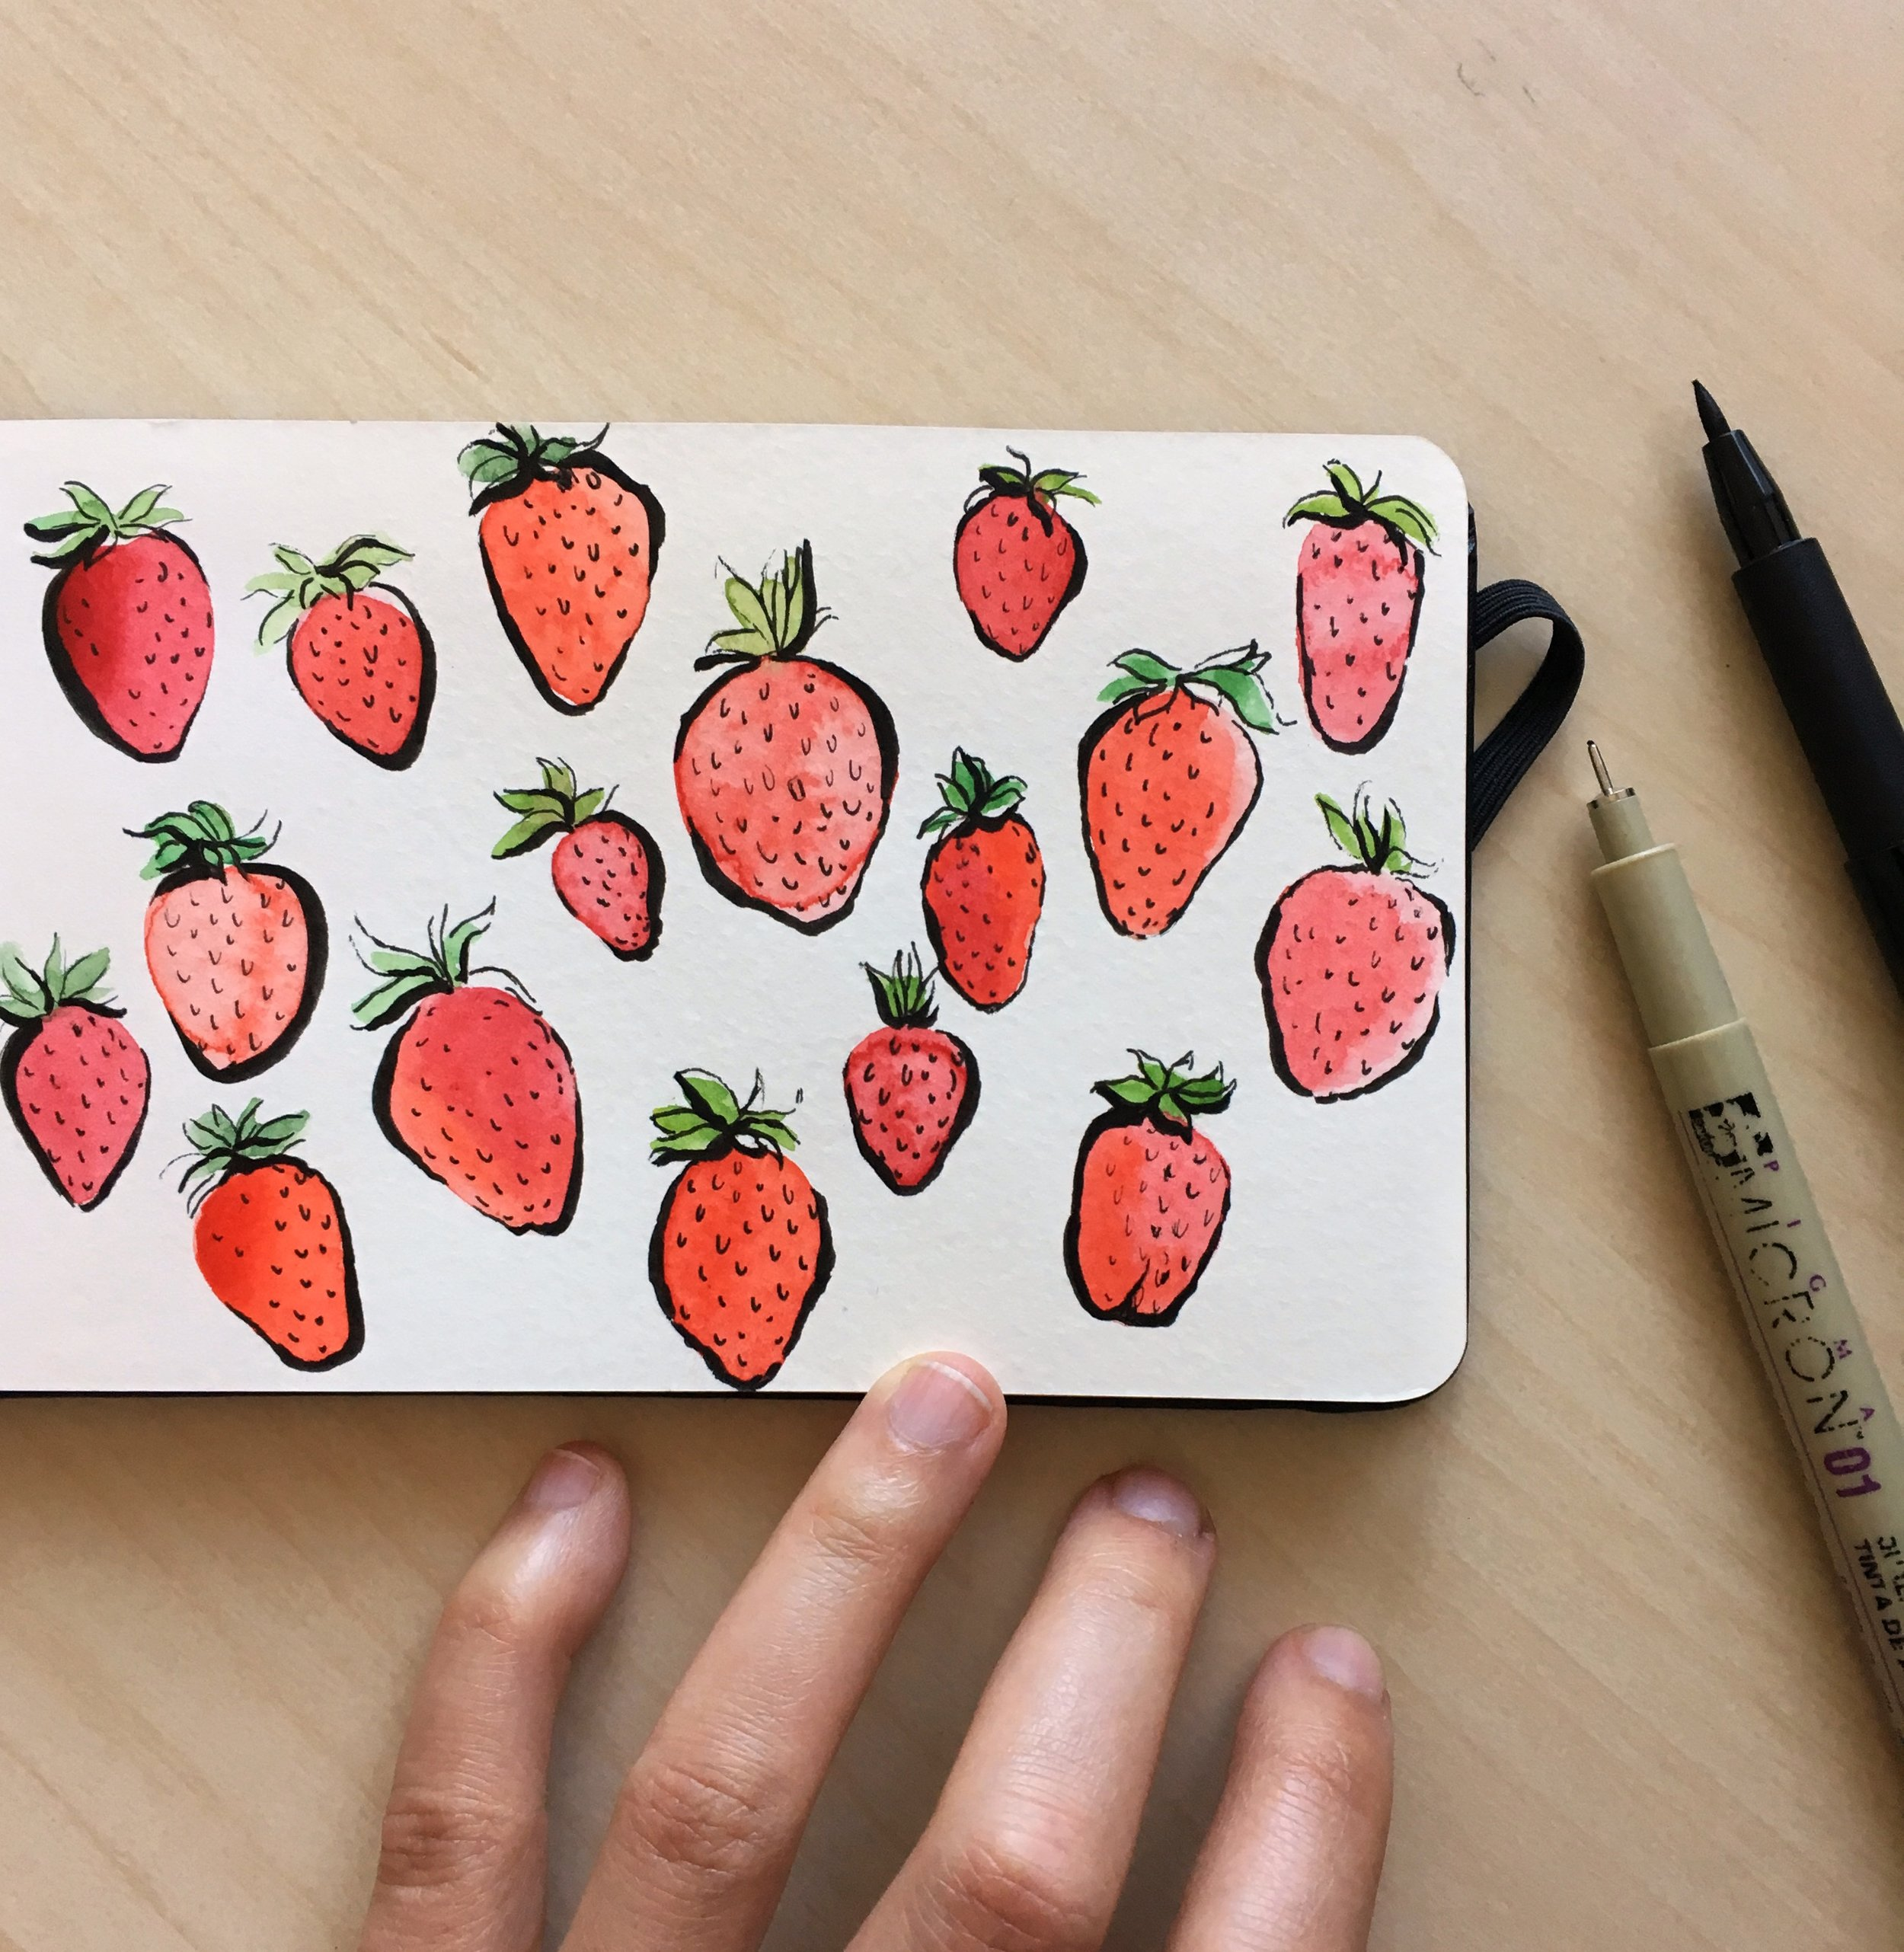 JosianneDufour_strawberries_watercolor_sketch.jpg